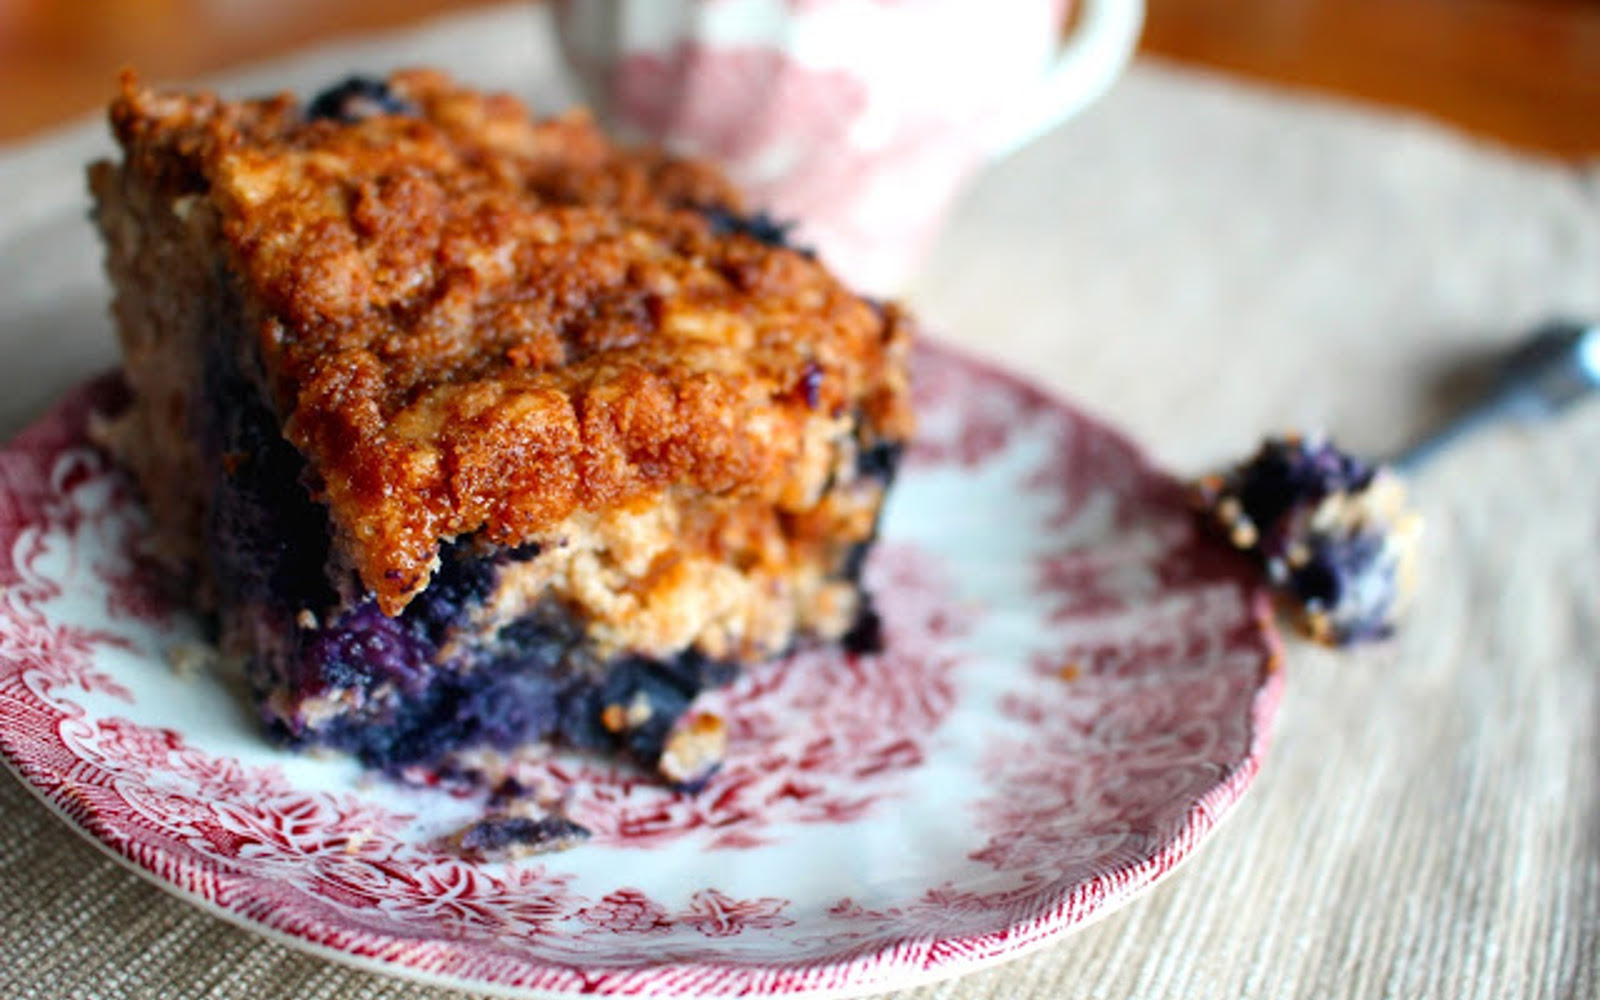 Vegan Gluten-Free Blueberry Coffee Cake with topping